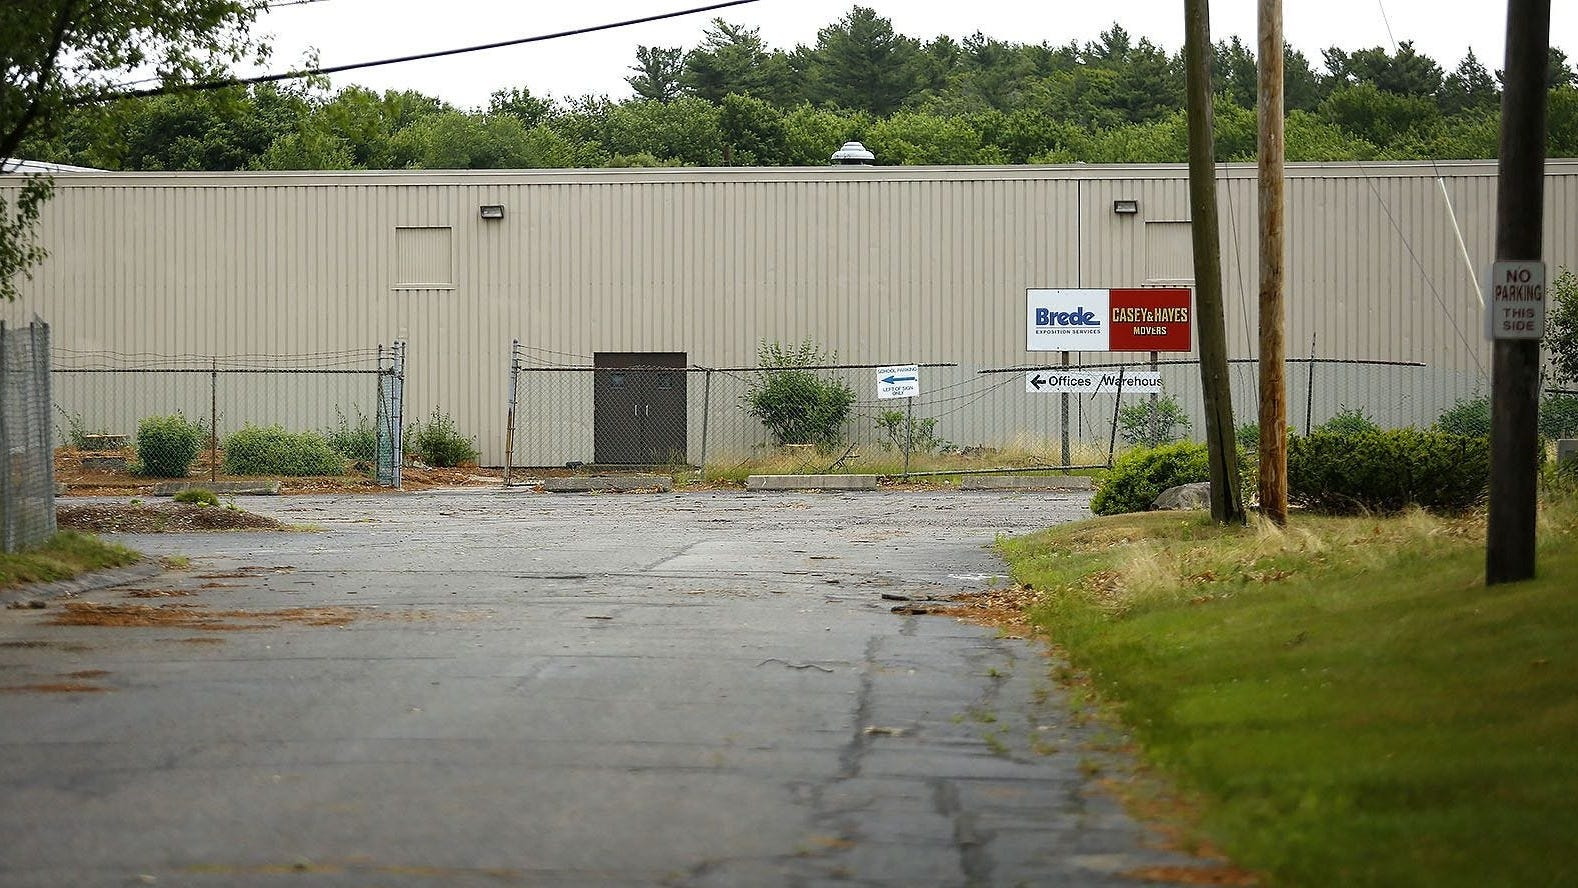 100 Industrial Park Road in Hingham is slated to be the future home of an Amazon distribution center.